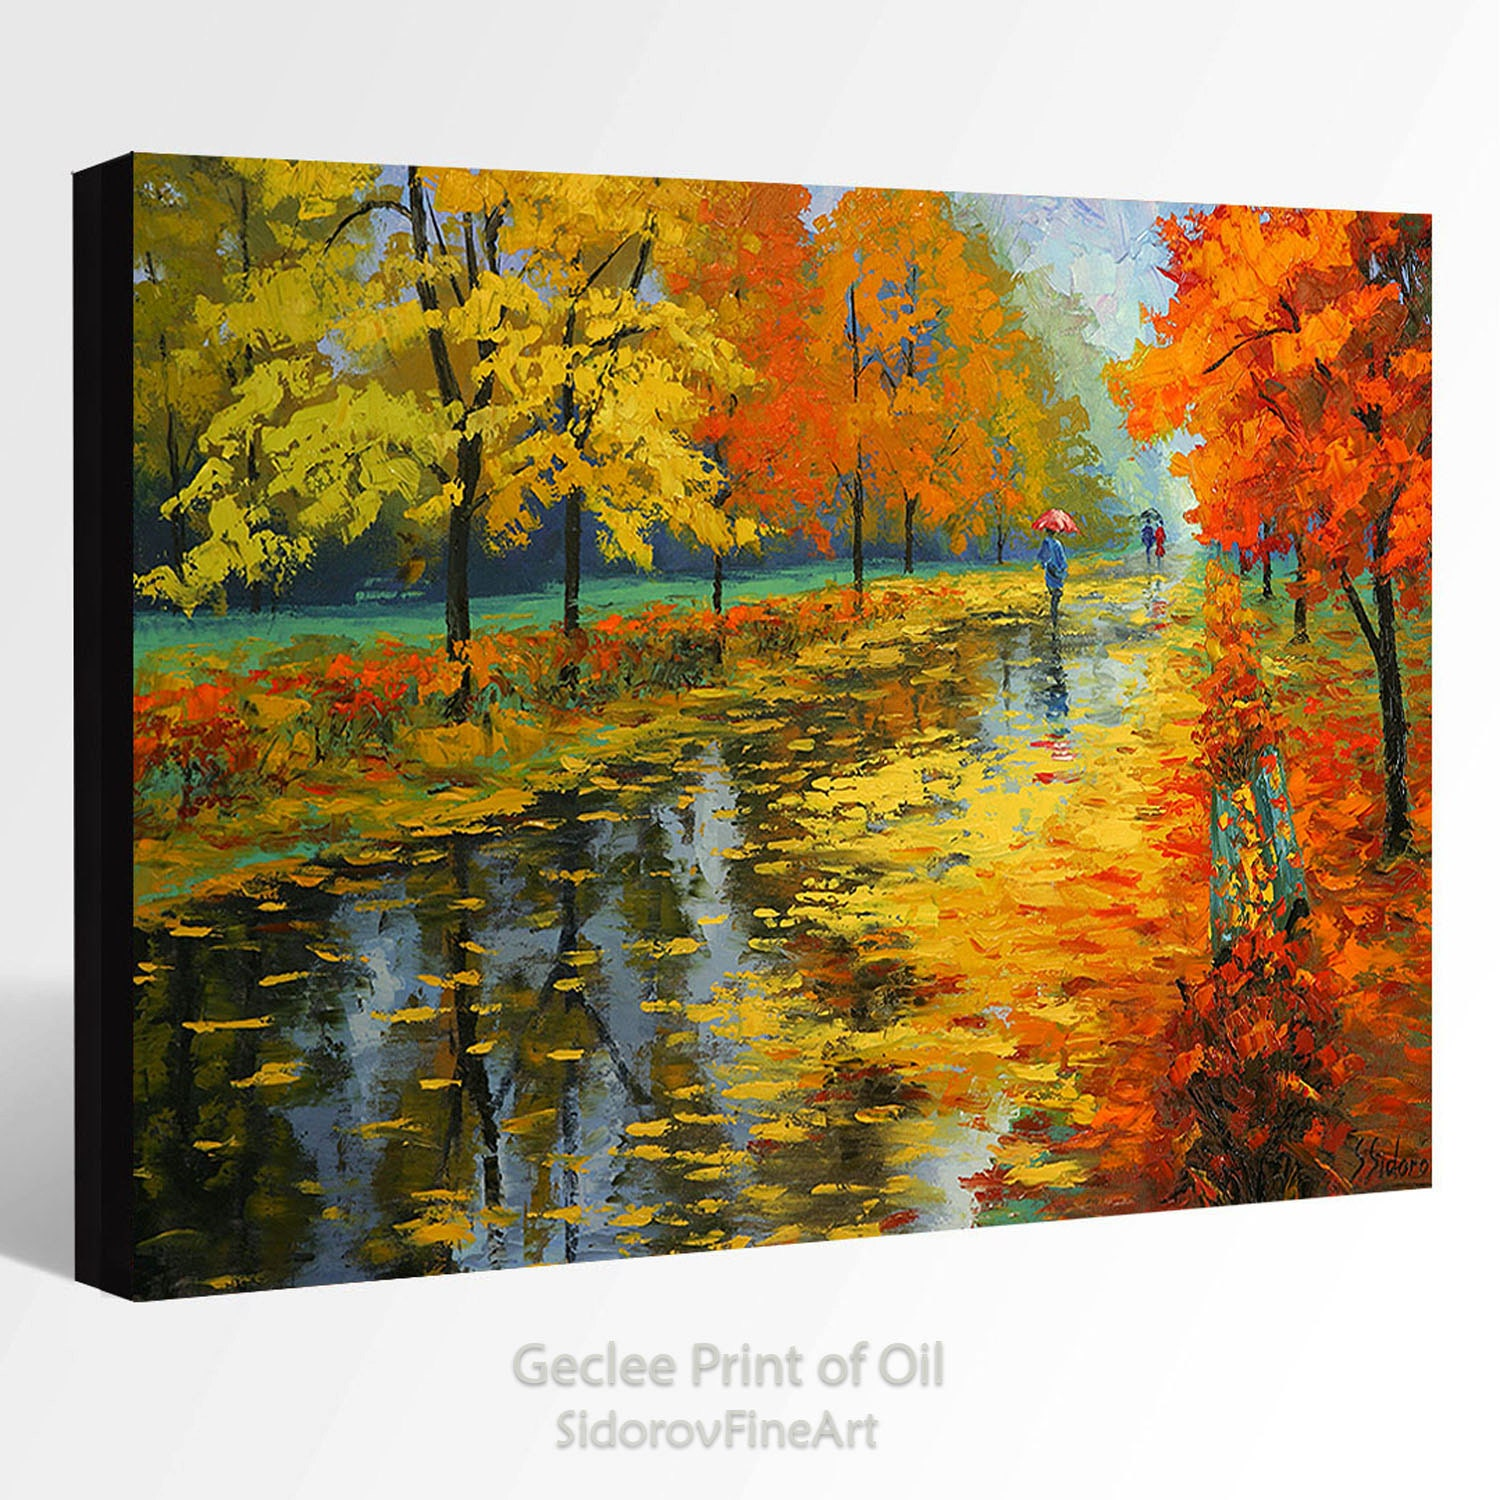 oil painting giclee print canvas print fine art print of